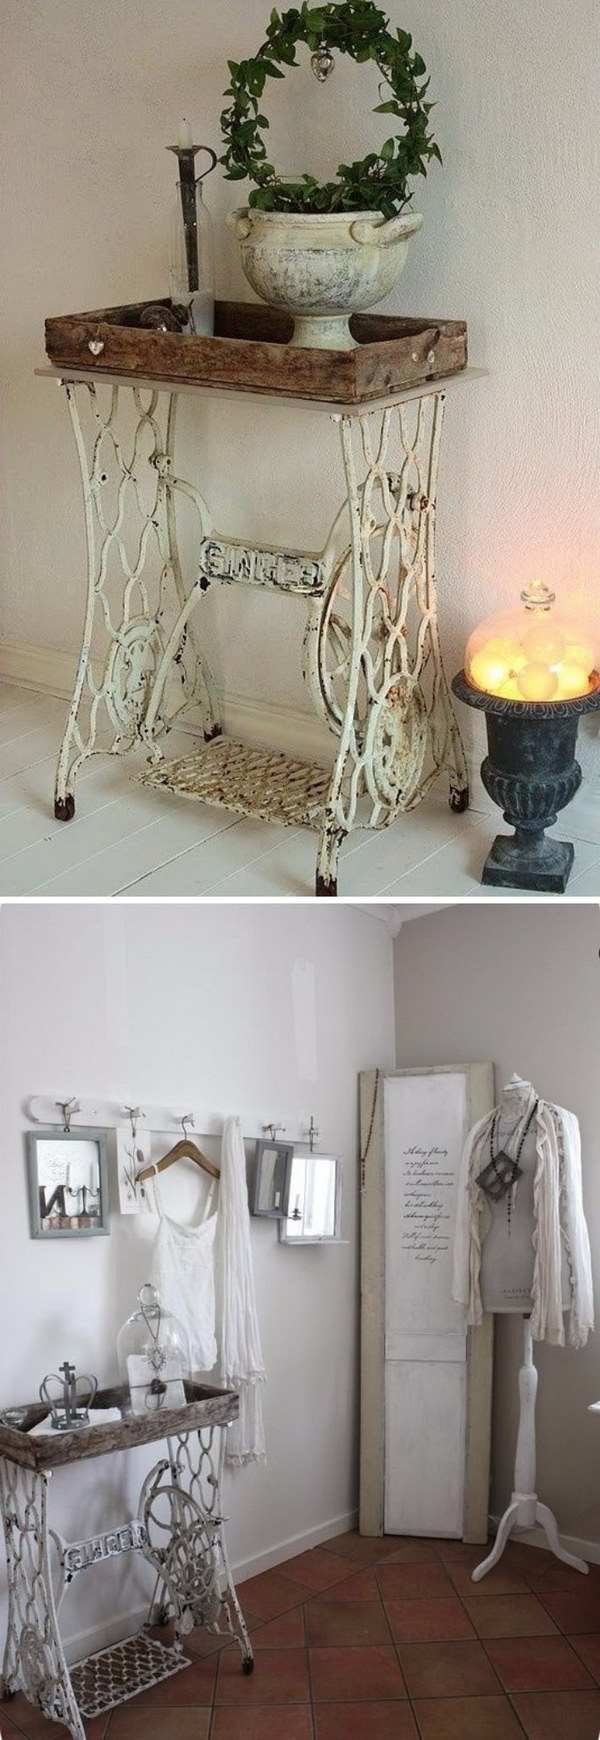 55 Awesome Shabby Chic Decor Diy Ideas Amp Projects 2018